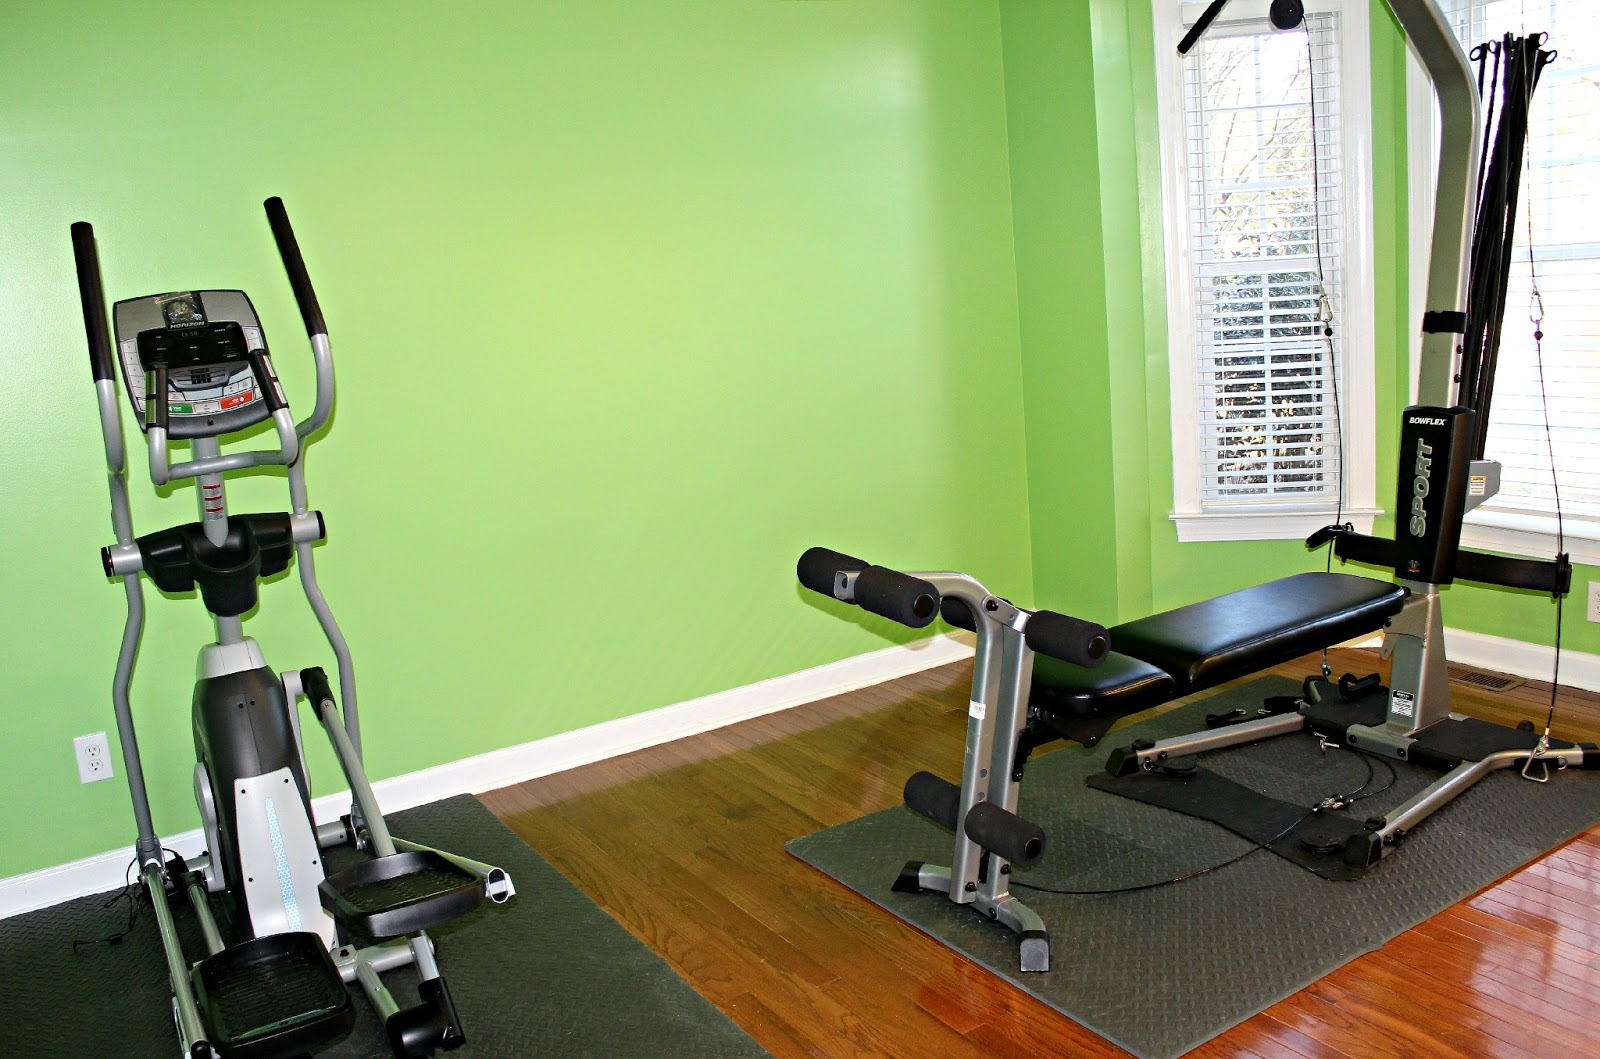 Home Gym Wall Color Green Maybe the color will grow on me. If not, then in a couple weeks, I'll test a few more paint colors and plan to repaint our home gym during my Easter ...